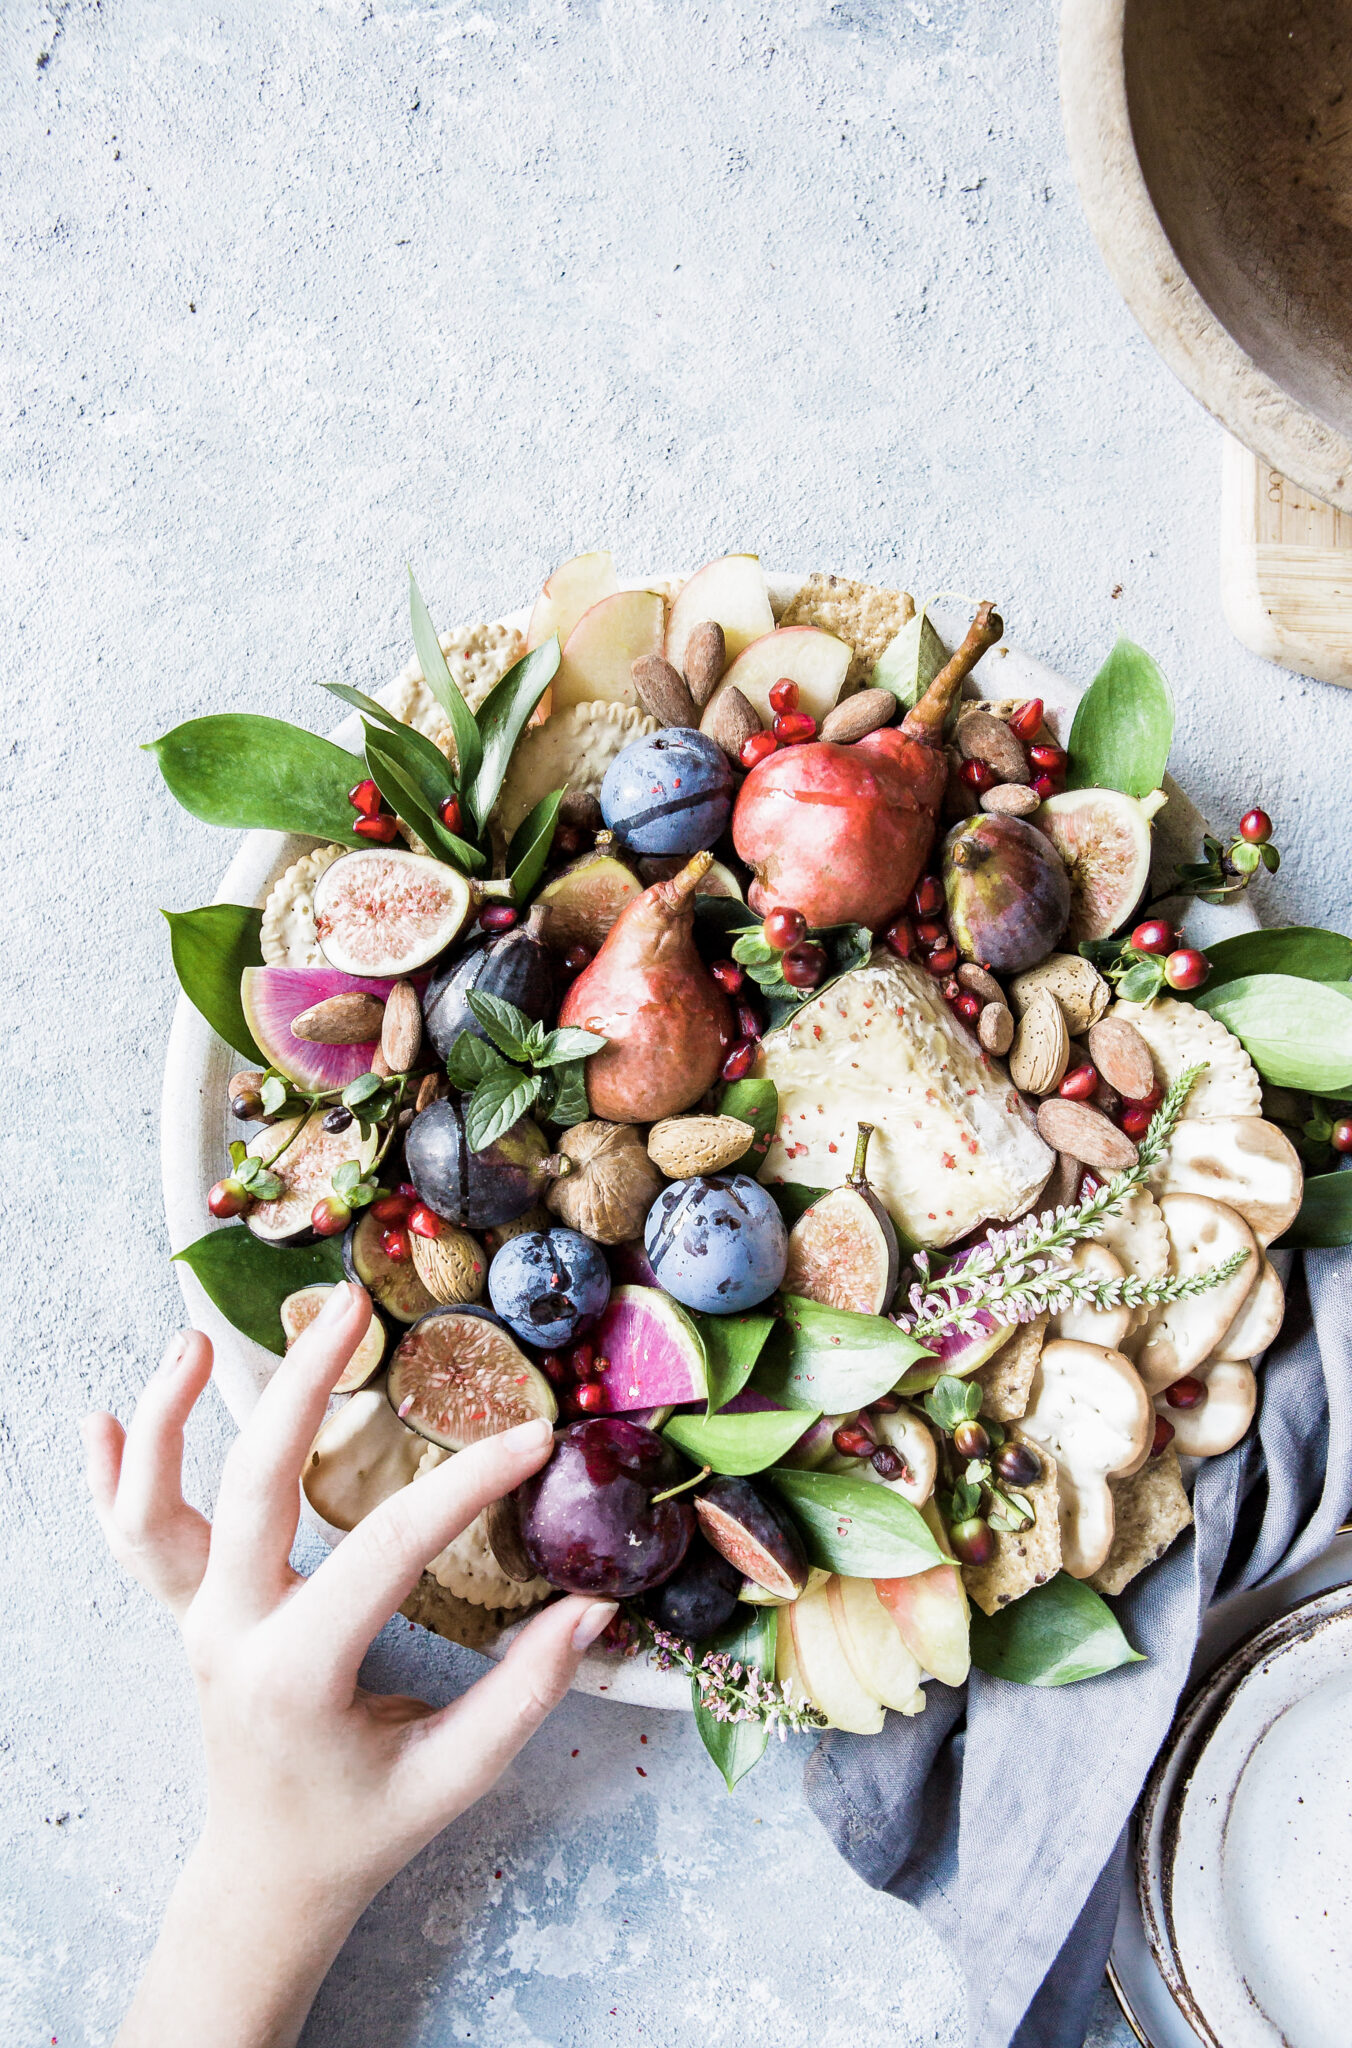 A hand reaches into a bowl stuffed with fresh fruit. This article covers 7 steps to live a healthy lifestyle.